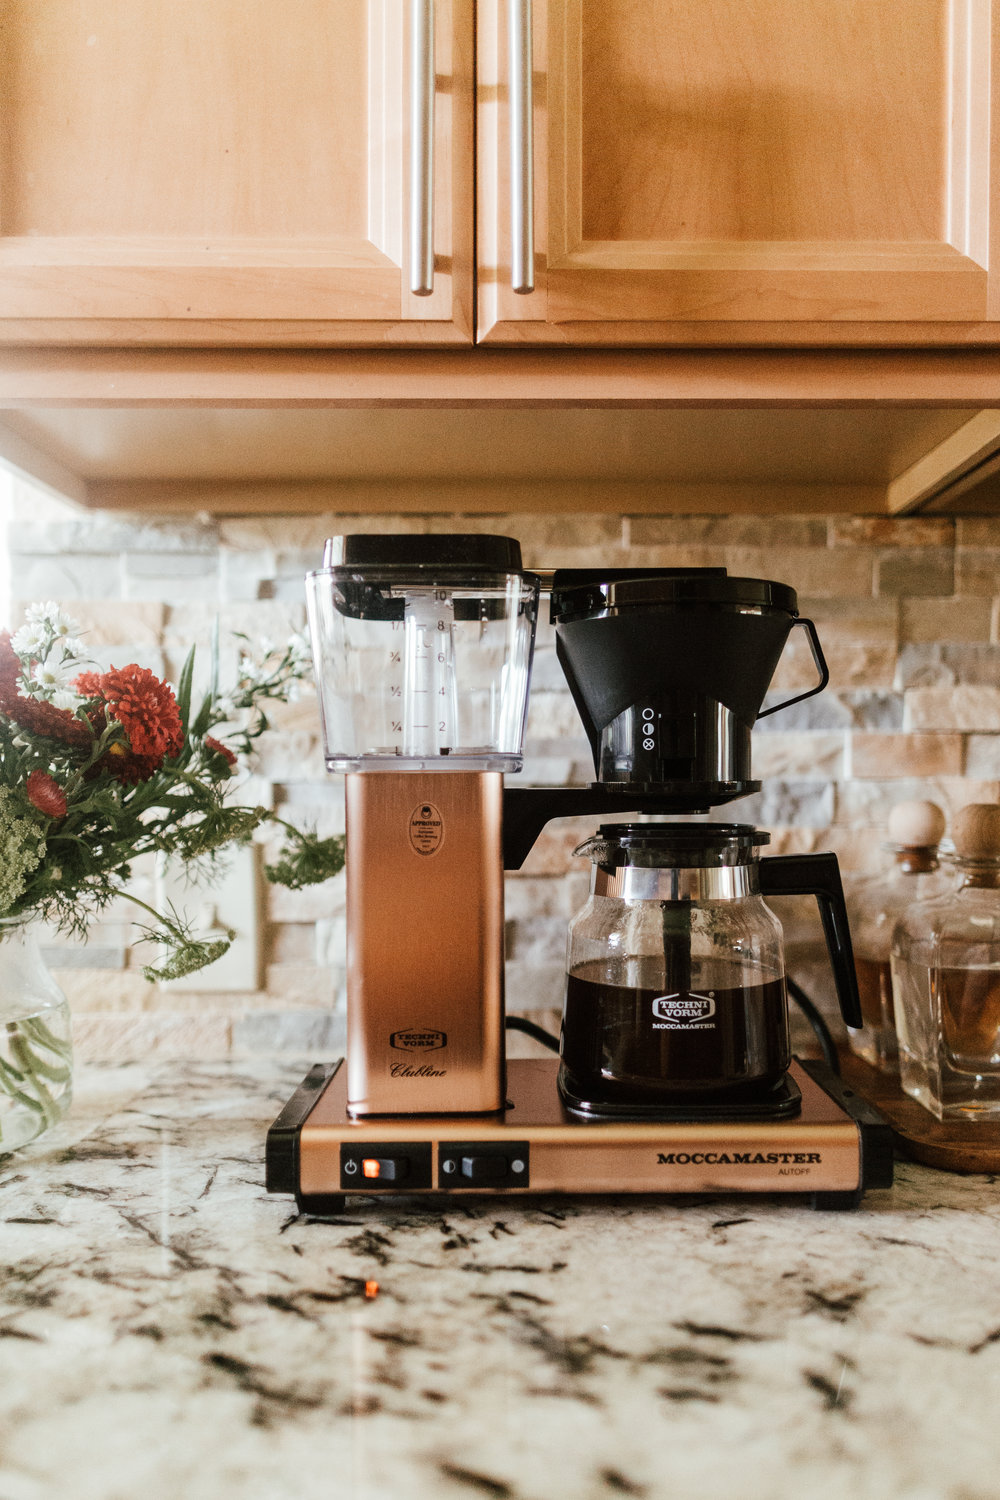 We got a new coffee maker, and boy it's a beauty. Nicholas and I both drink our coffee black. I occasionally add a little almond milk, so we really didn't need any bells or whistles. That didn't stop me, however, from getting a rose-gold colored coffee maker. :) It's SO PRETTY!